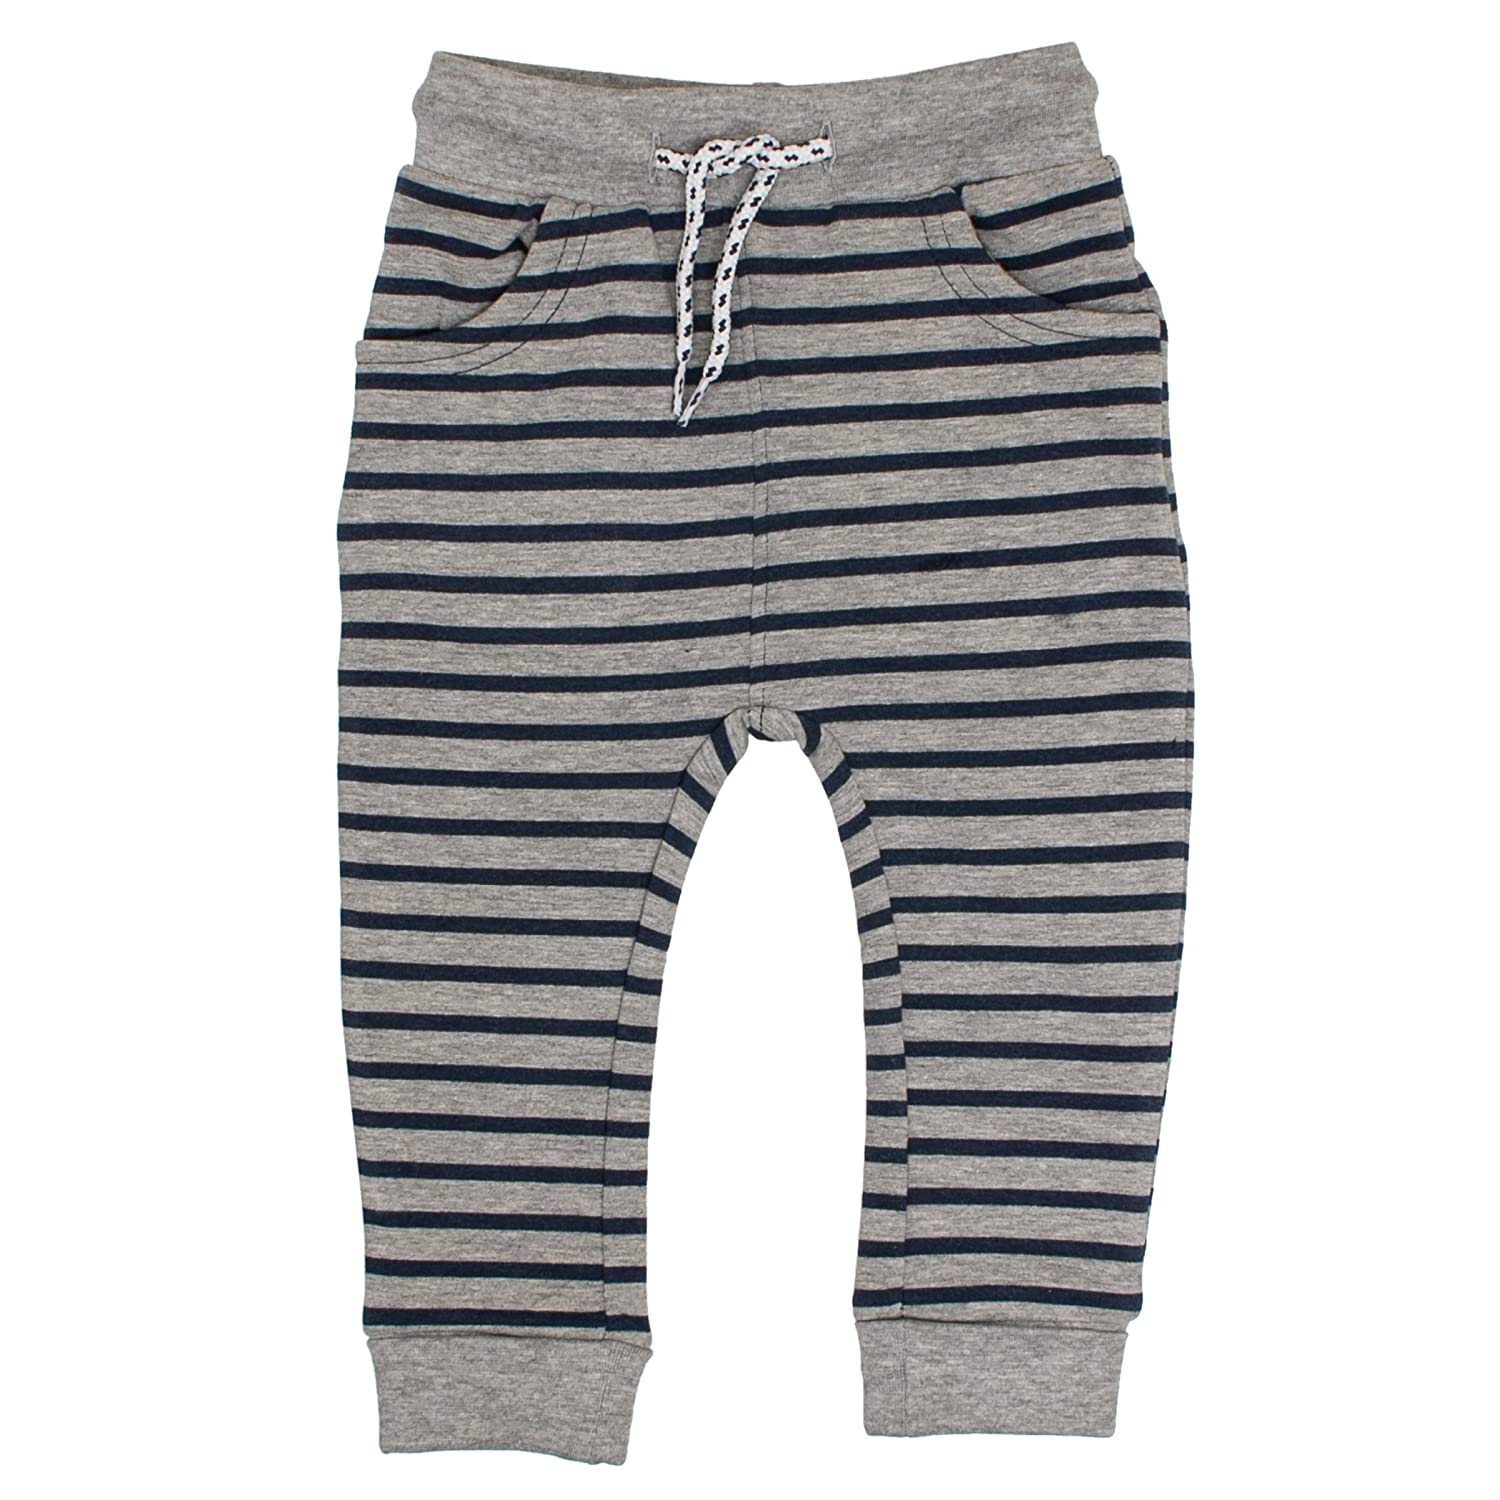 Salt & Pepper B Trousers Little Man Stripe, Pantalones Unisex bebé Pantalones Unisex bebé SALT AND PEPPER 85217137